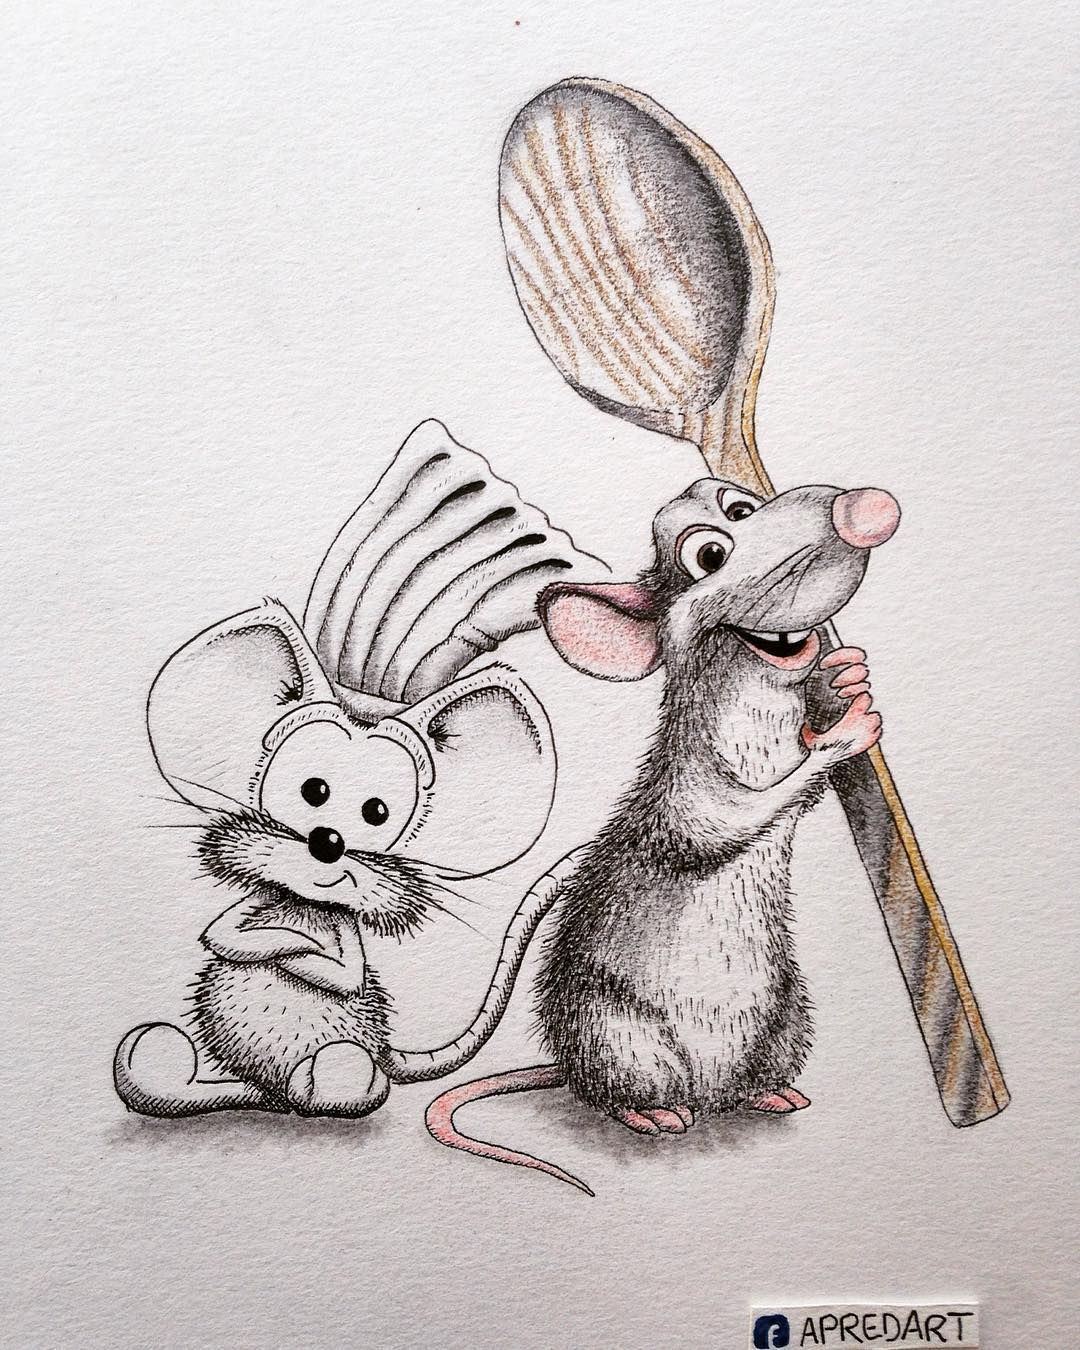 04-Remy-from-Ratatouille-Loïc-Apreda-apredart-Drawings-of-Rikiki-the-Mouse-and-his-Famous-Friends-www-designstack-co